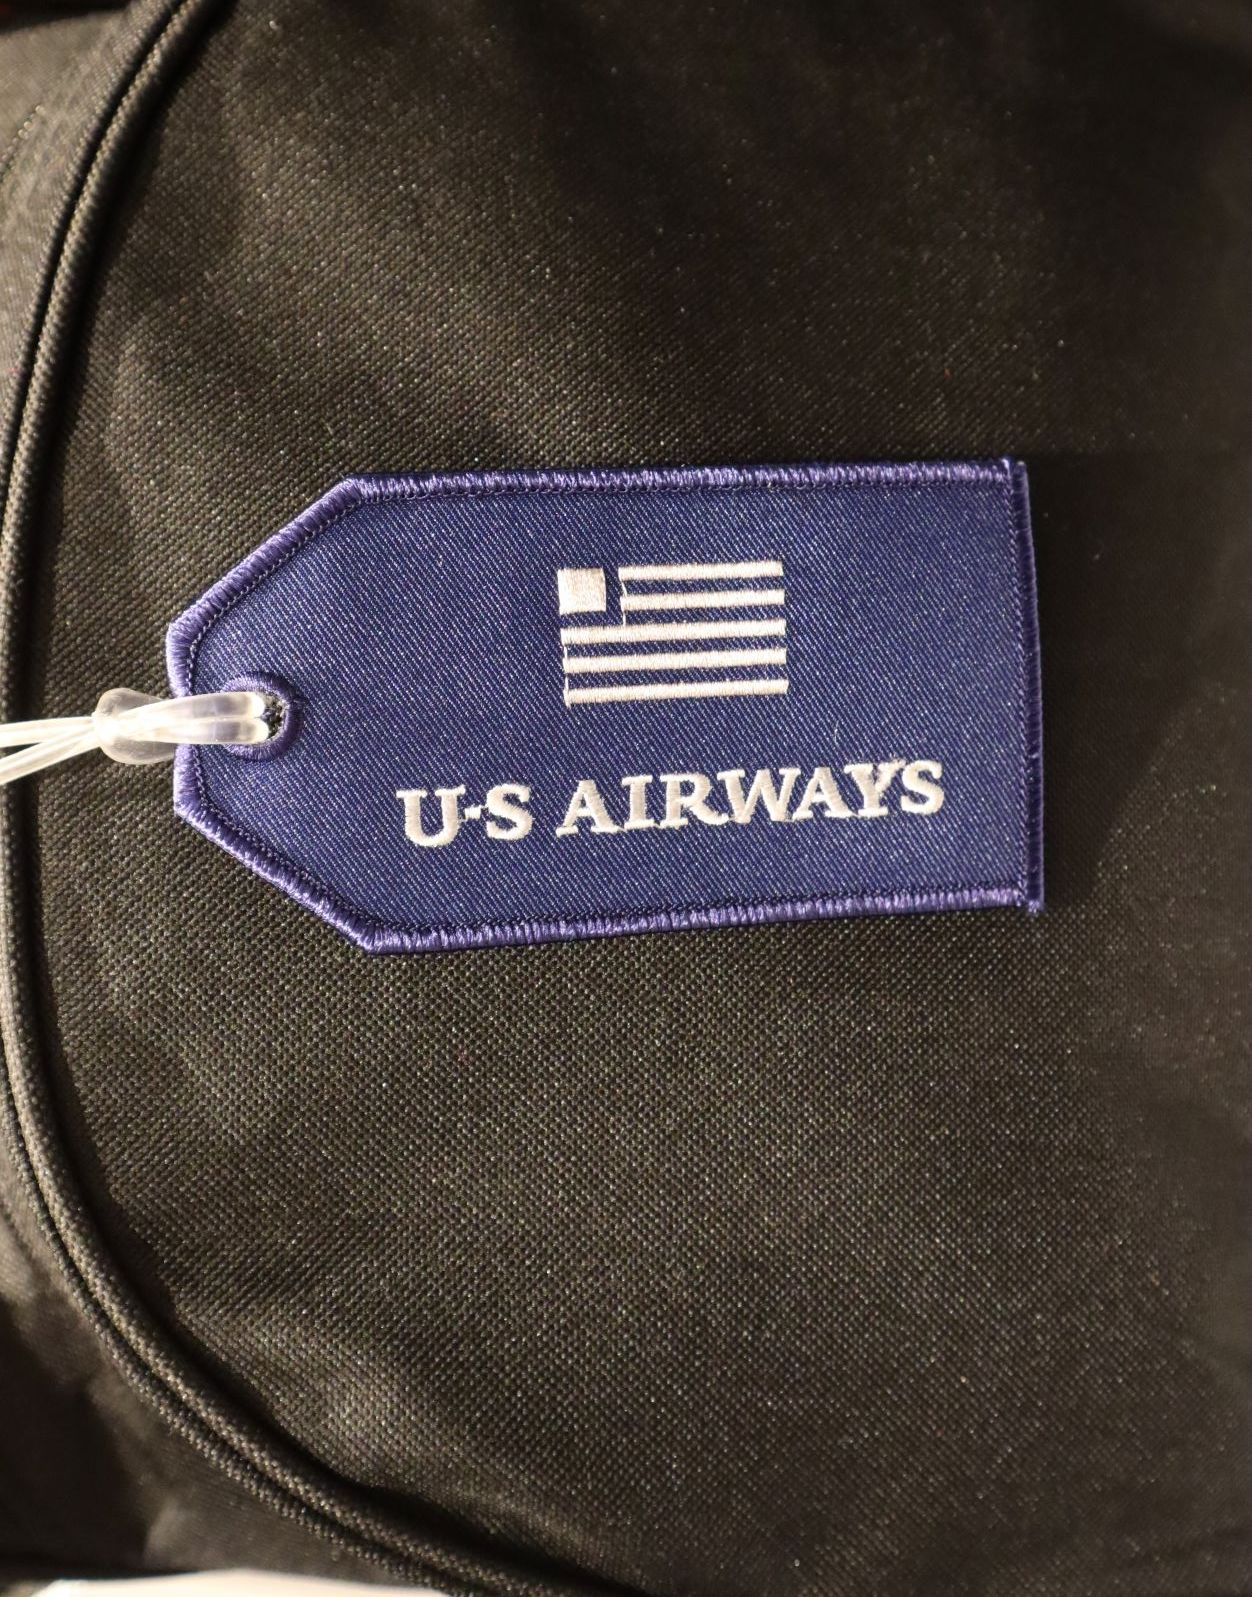 U.S Airways - Bag Tag